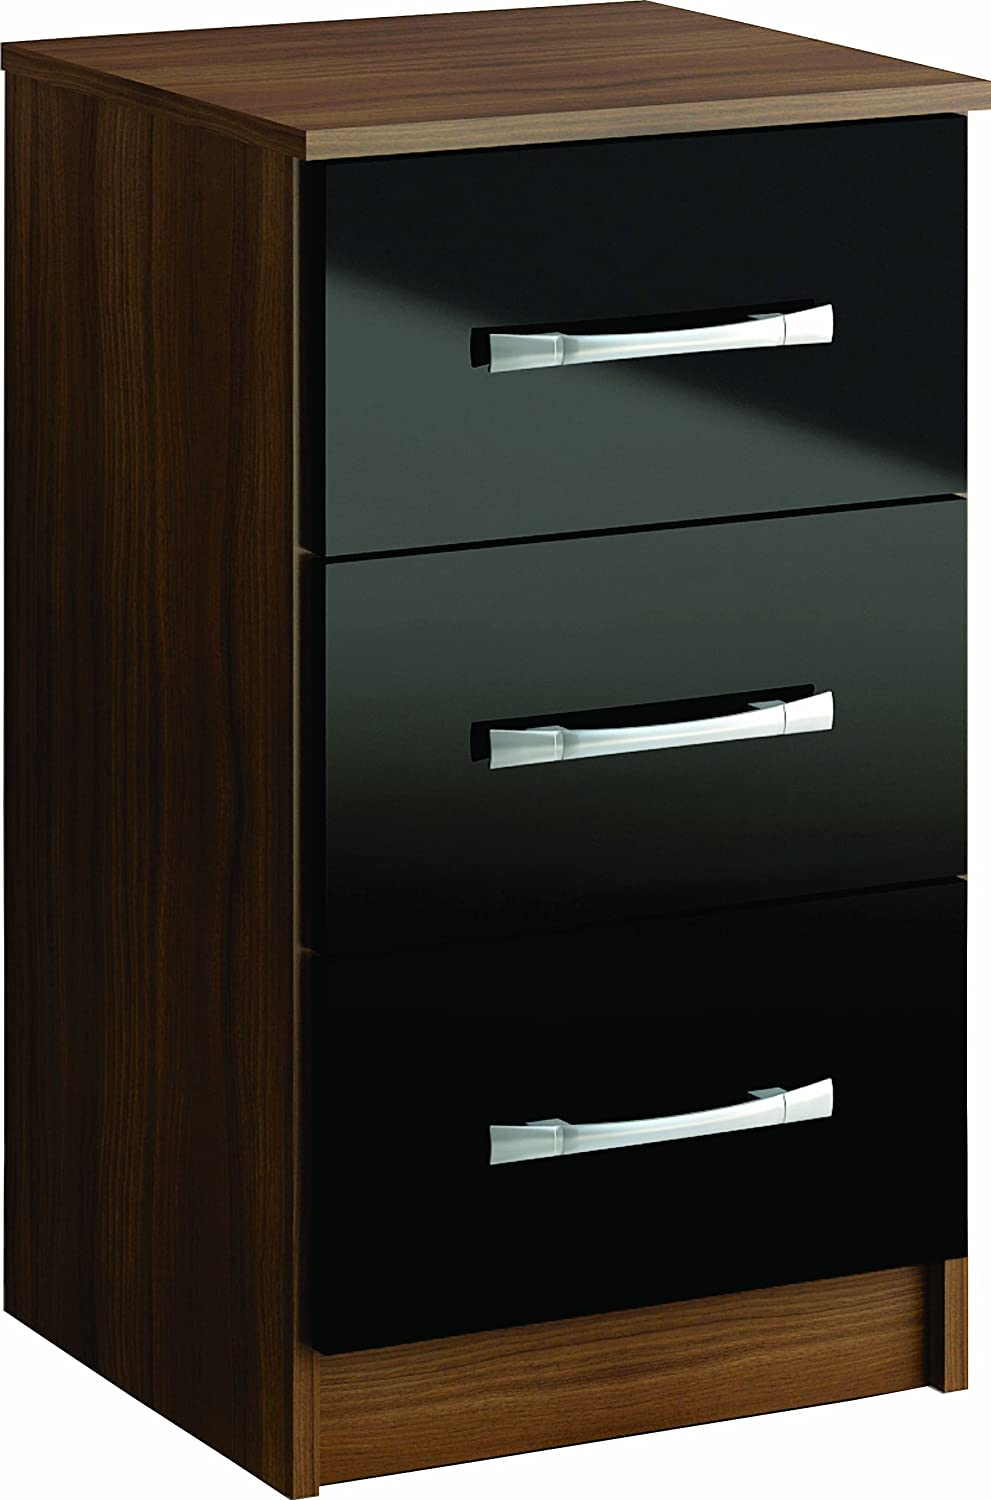 Birlea Lynx 3-Drawer Bedside Table - High-Gloss, Black Birlea Furniture Ltd LYNBSBLK